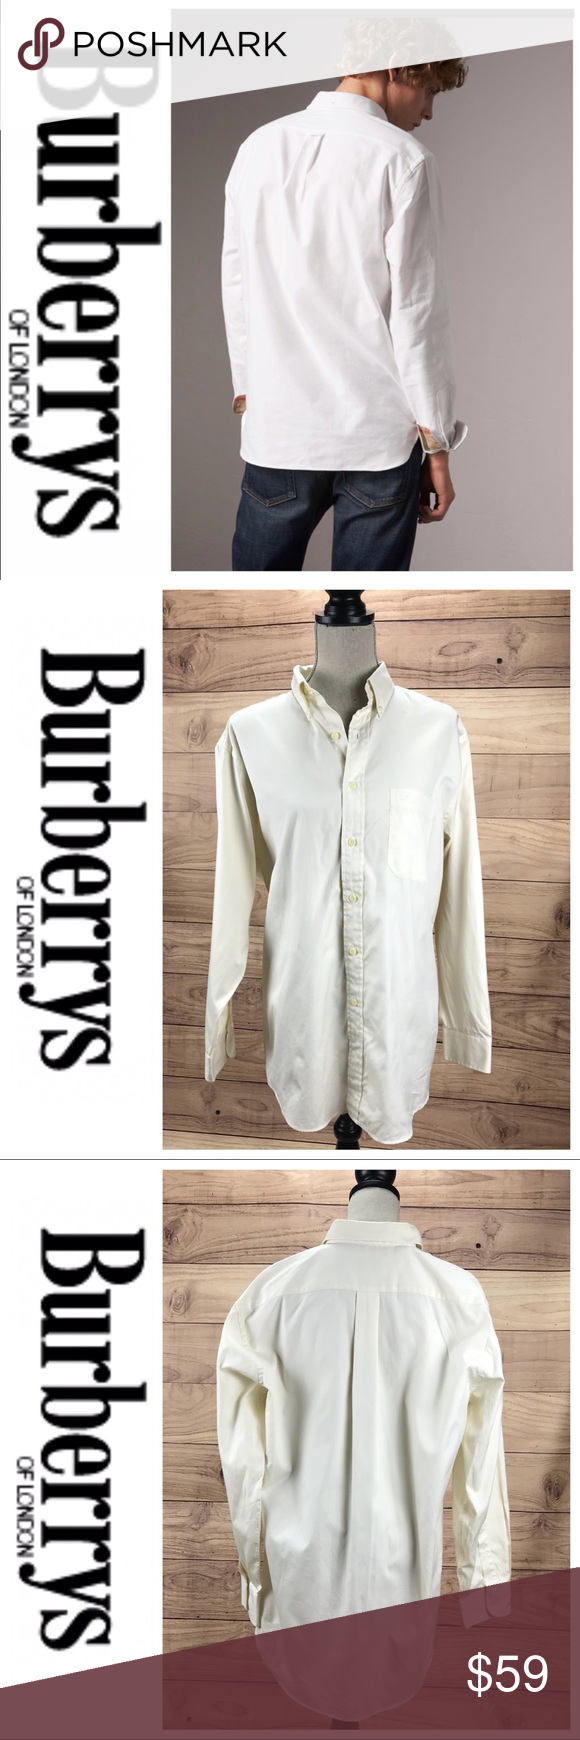 Saleburberrys Mens Ivory Dress Shirt My Posh Closet